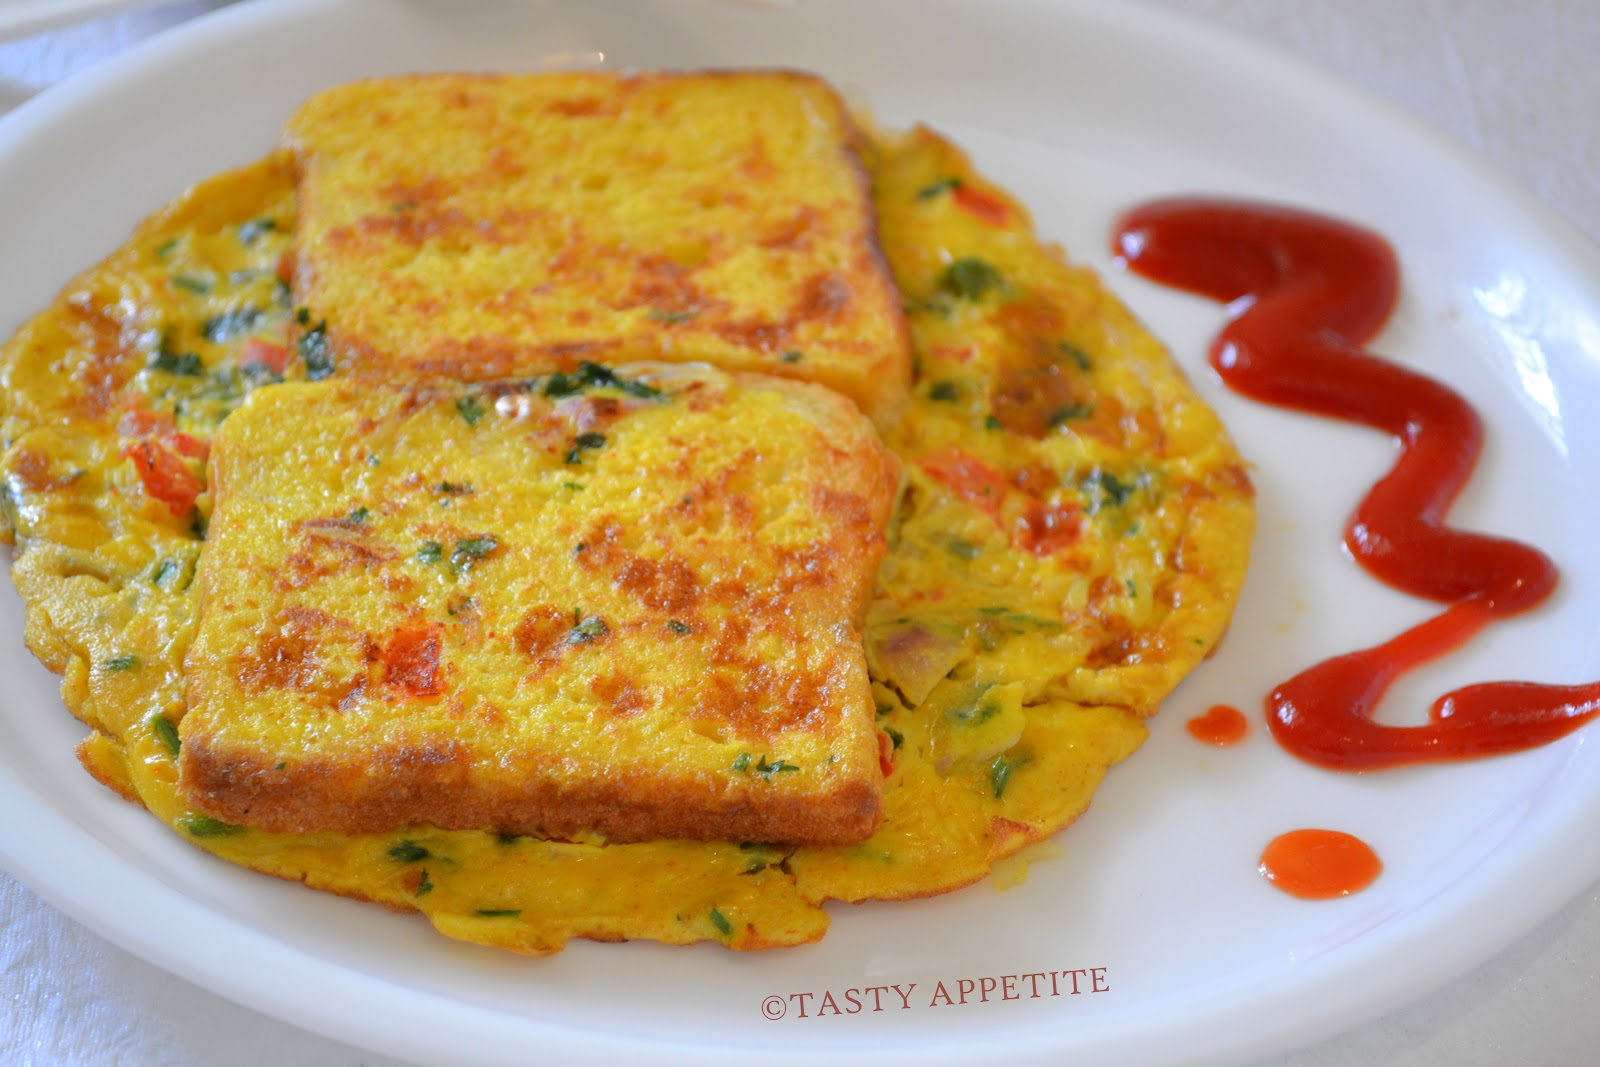 ... make delicious & healthy Bread Omelette using this simple recipe